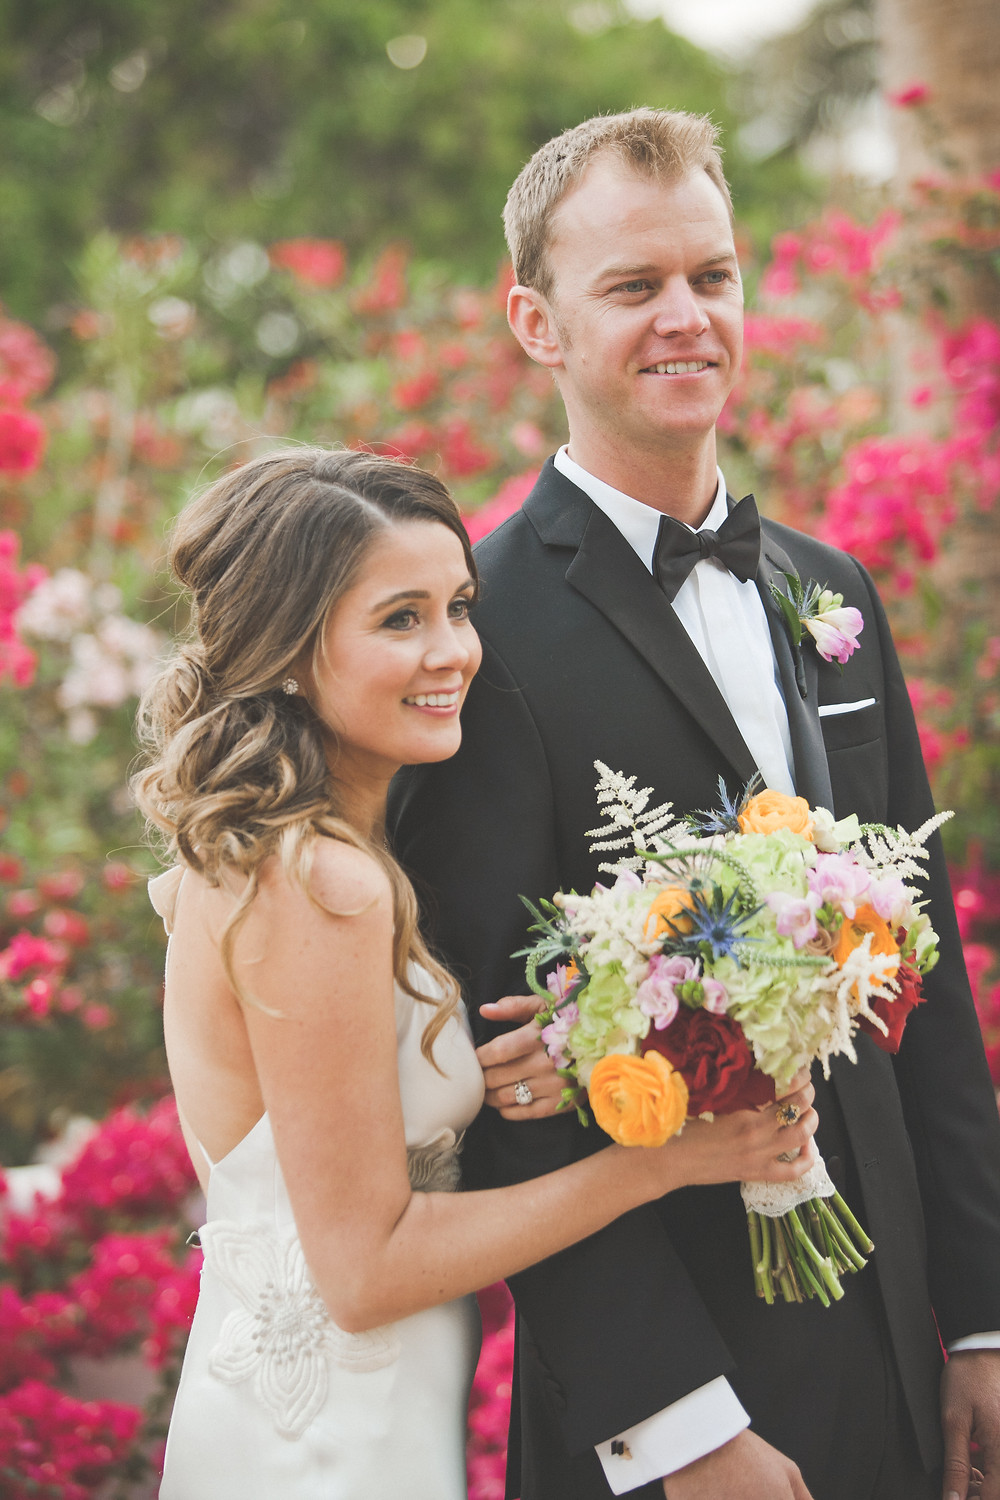 Elopement Couple Bride and Groom with Bouquet